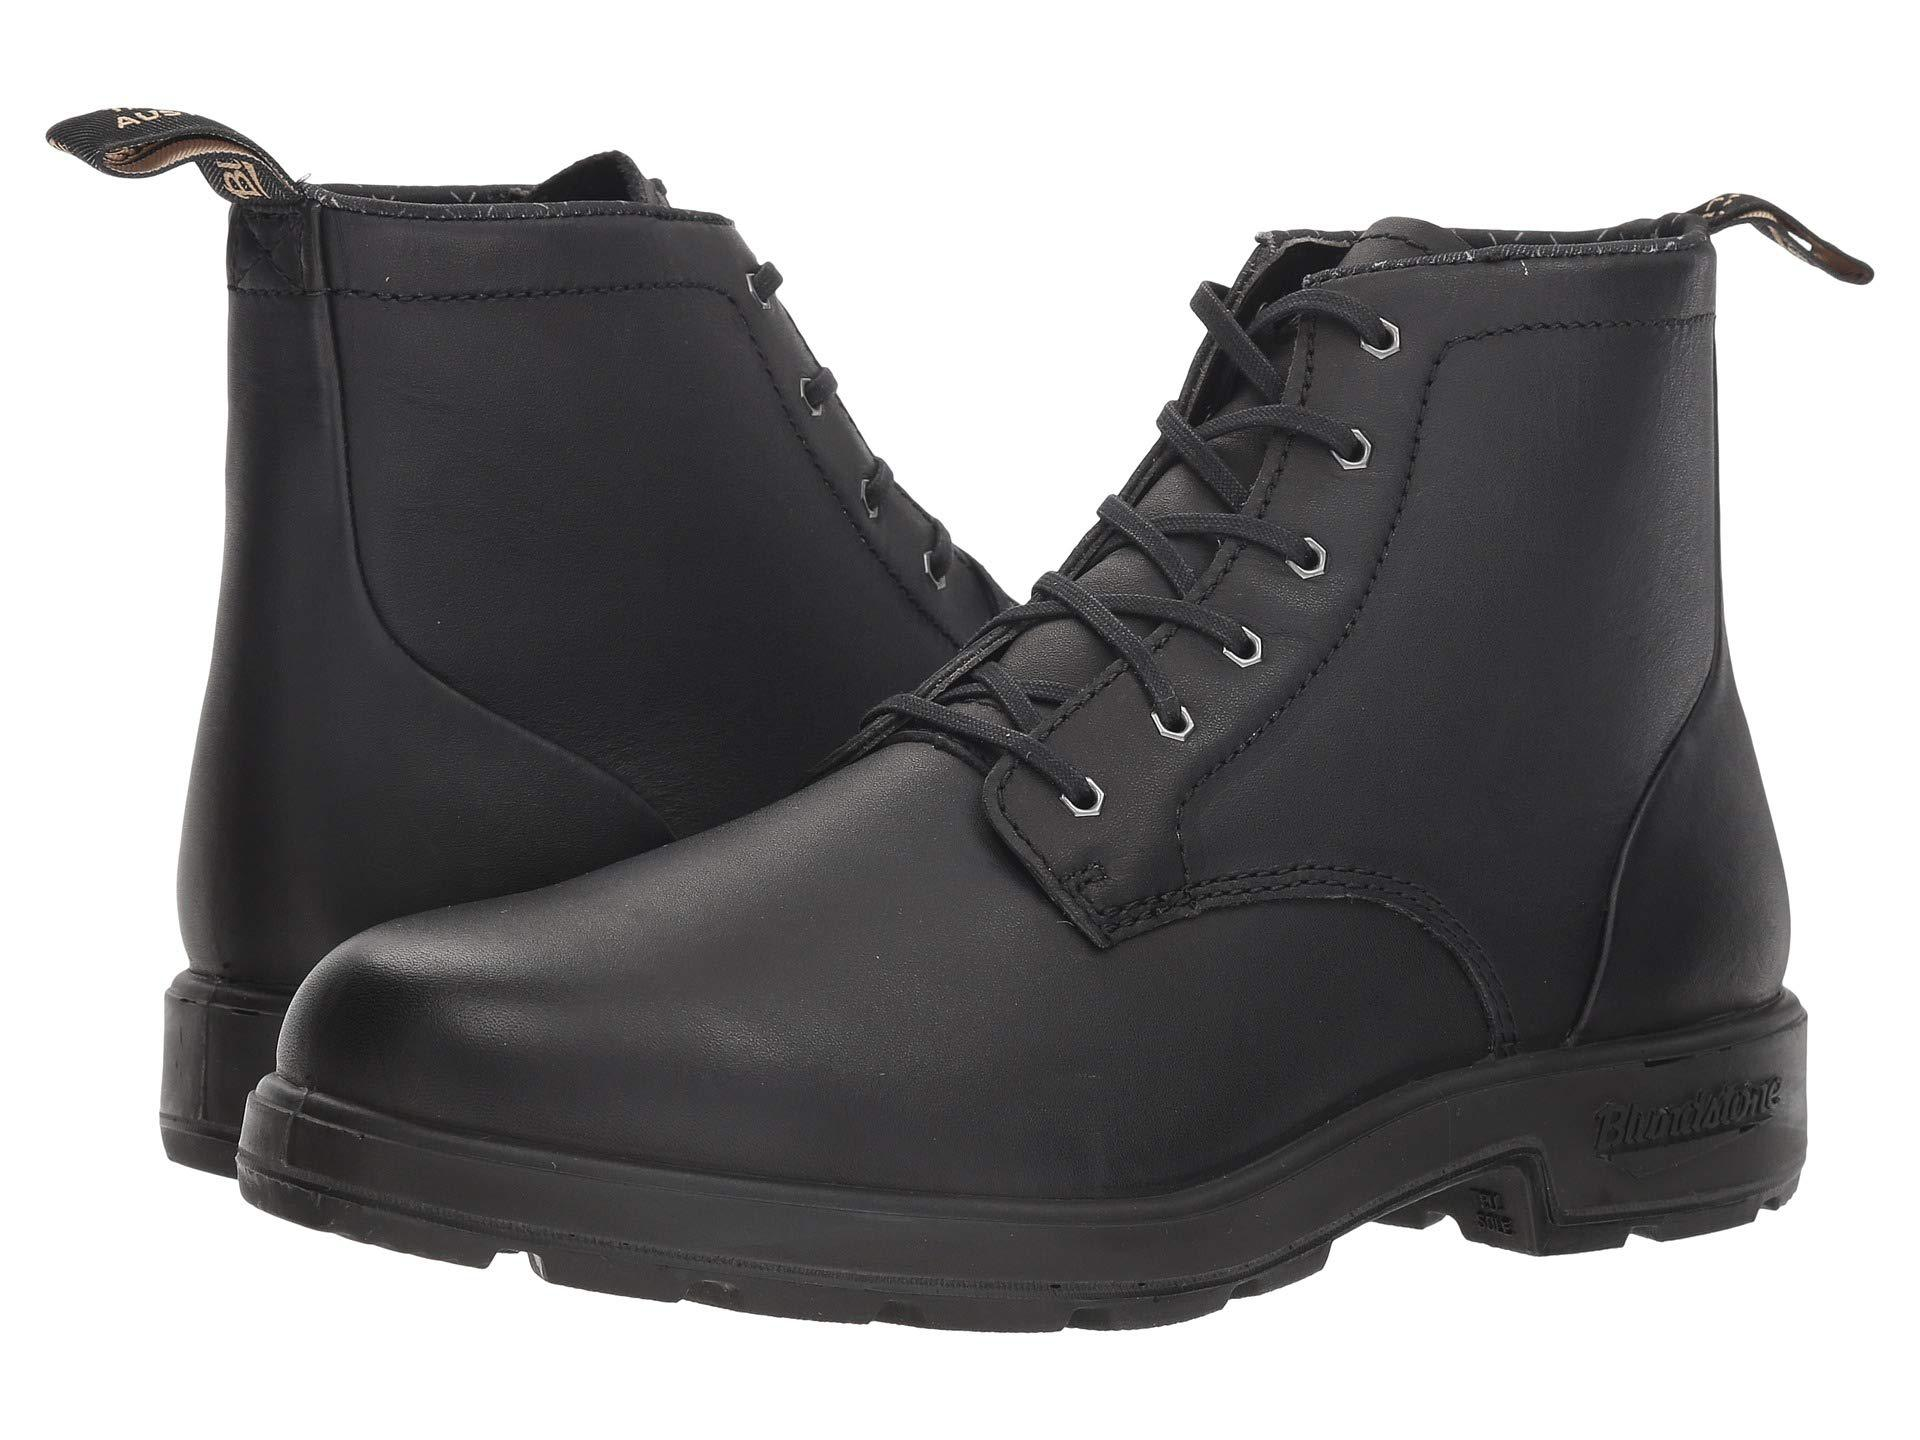 9d5b1d816597 Lyst - Blundstone Bl1617 (black) Lace-up Boots in Black for Men